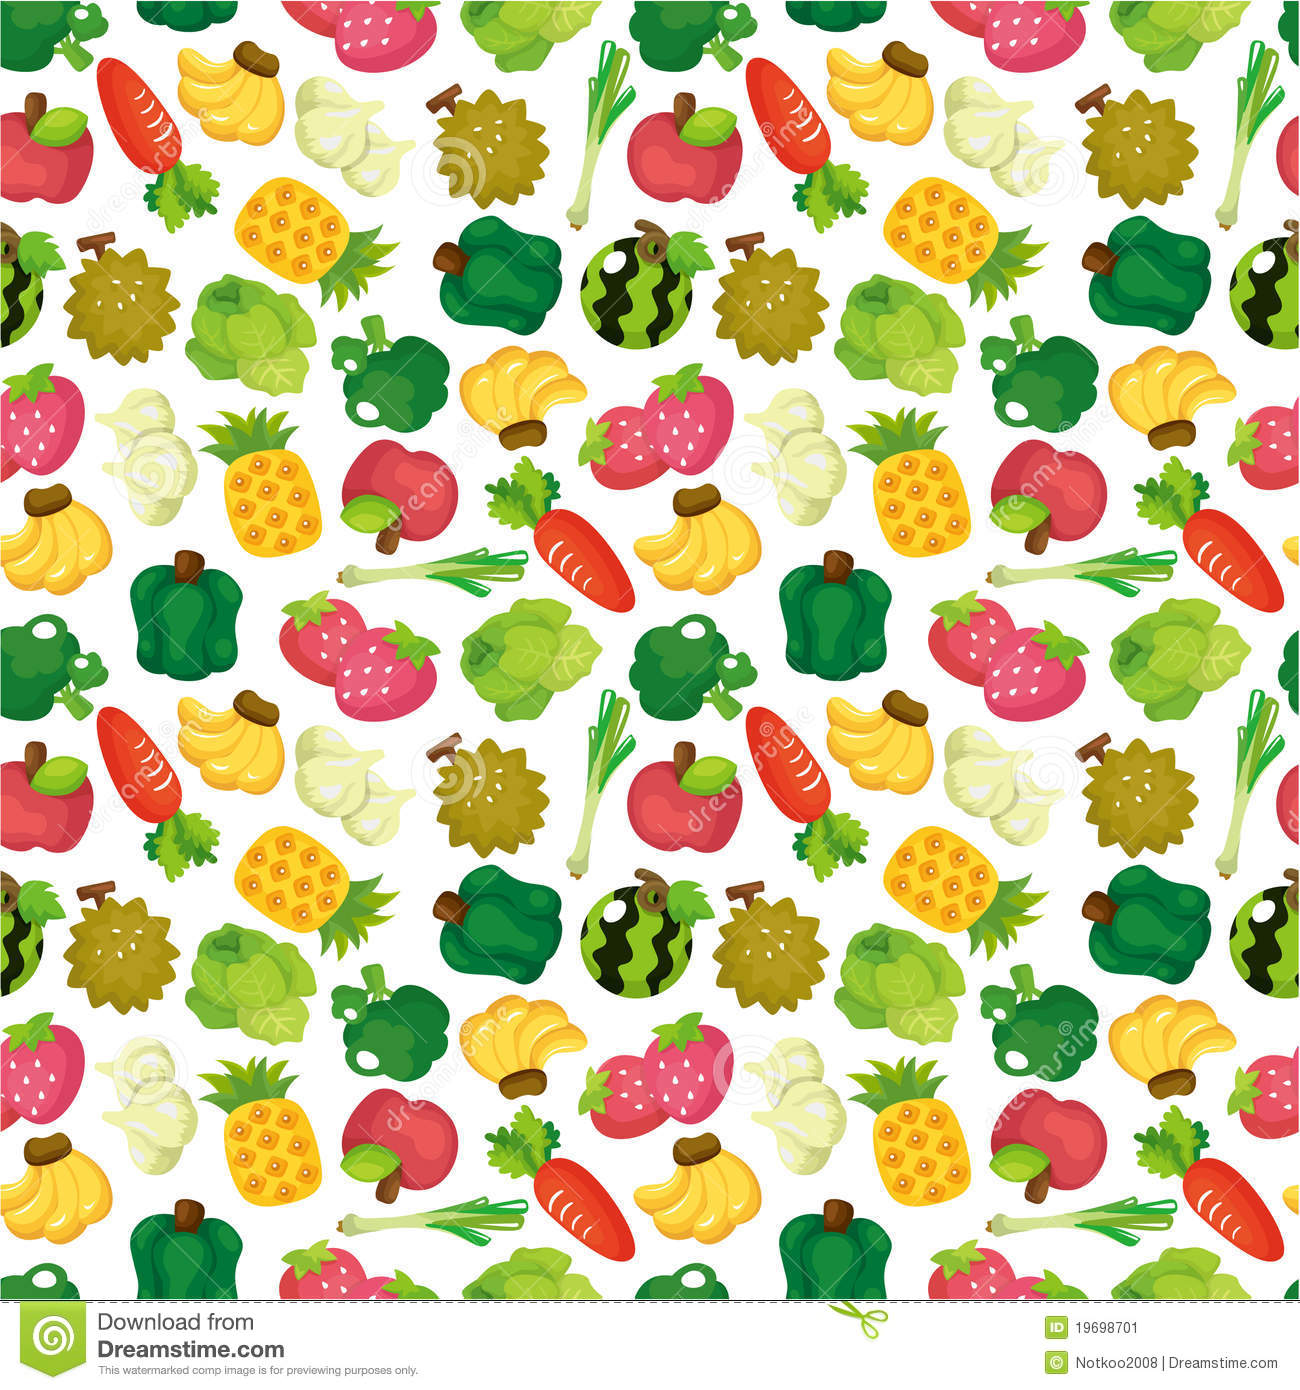 Cartoon Fruits And Vegetables Seamless Pattern Stock Vector